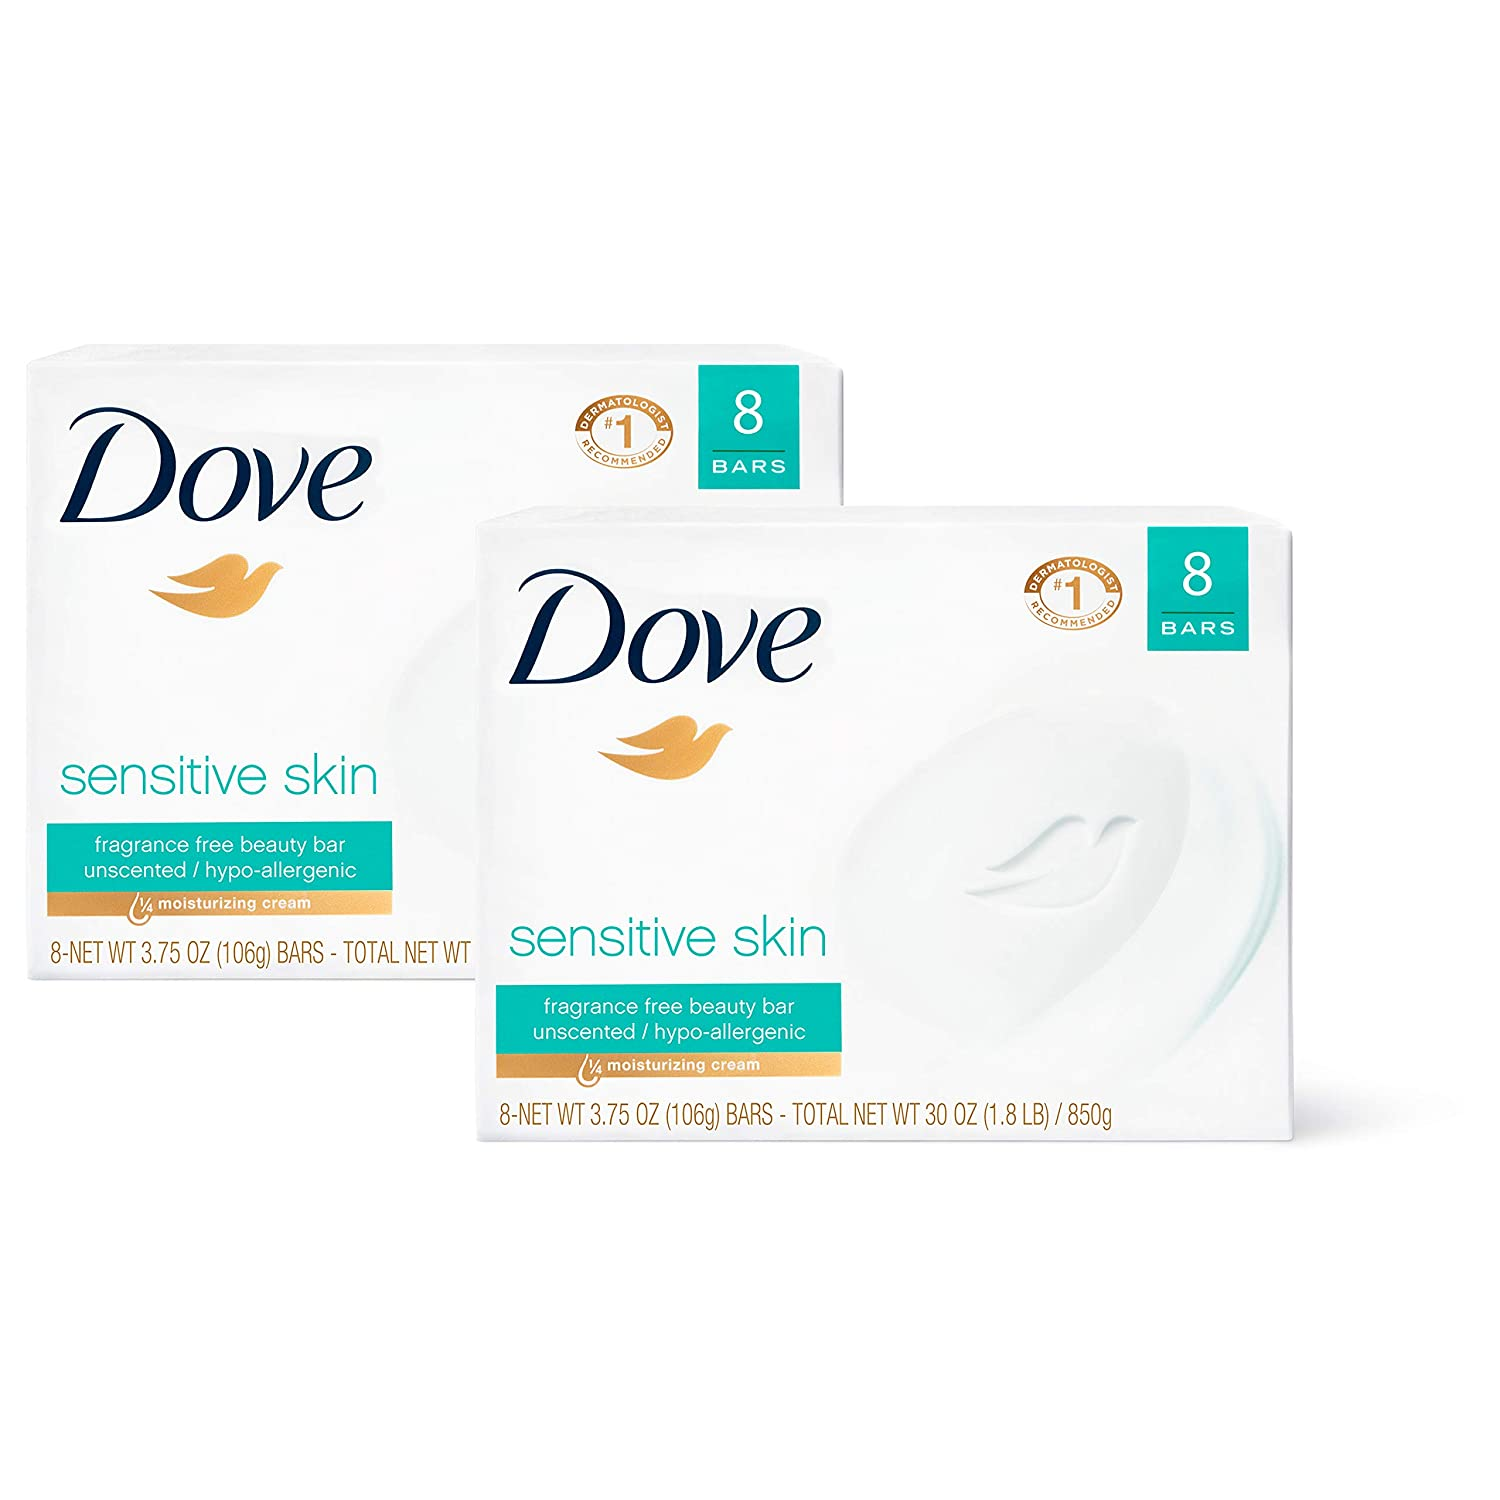 Dove Beauty Bar Gently Cleanses and Nourishes Sensitive Skin Effectively Washes Away Bacteria While Nourishing Your Skin, 3.75 oz, 16 Bars : Bath Soaps : Beauty